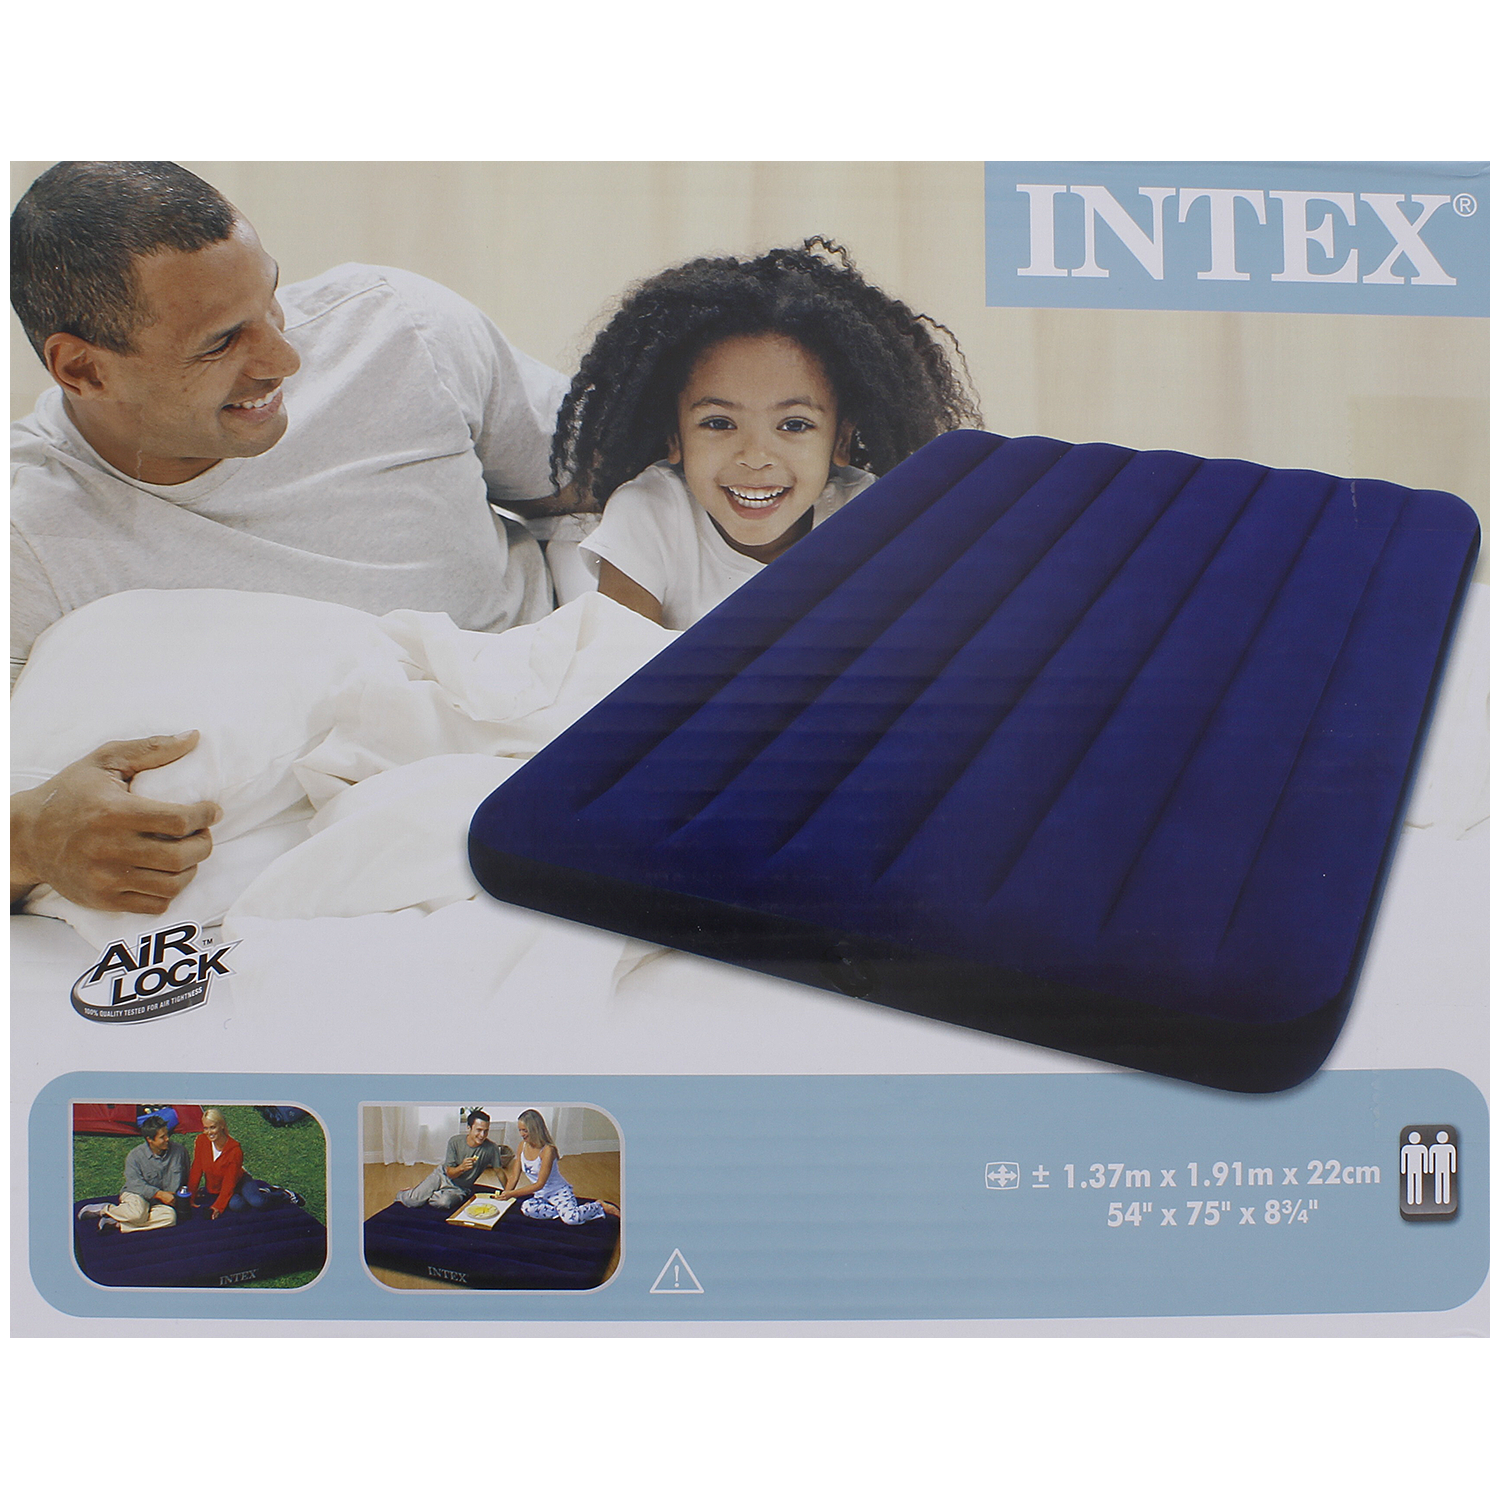 Intex luchtbed 2 persoons for Action luchtbed